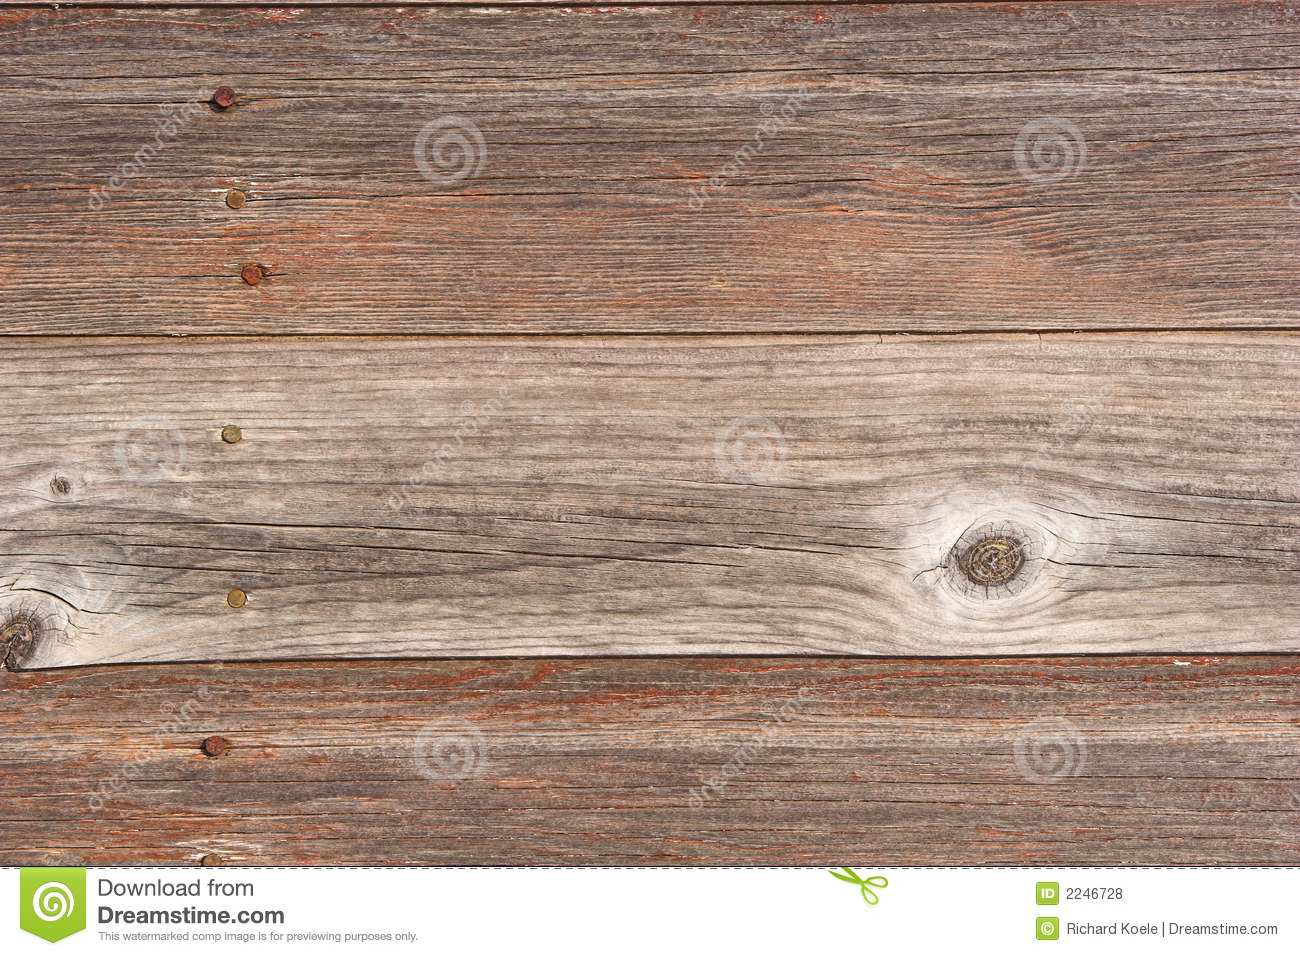 Weathered Wood Barn Siding Royalty Free Stock Photos - Image: 2246728